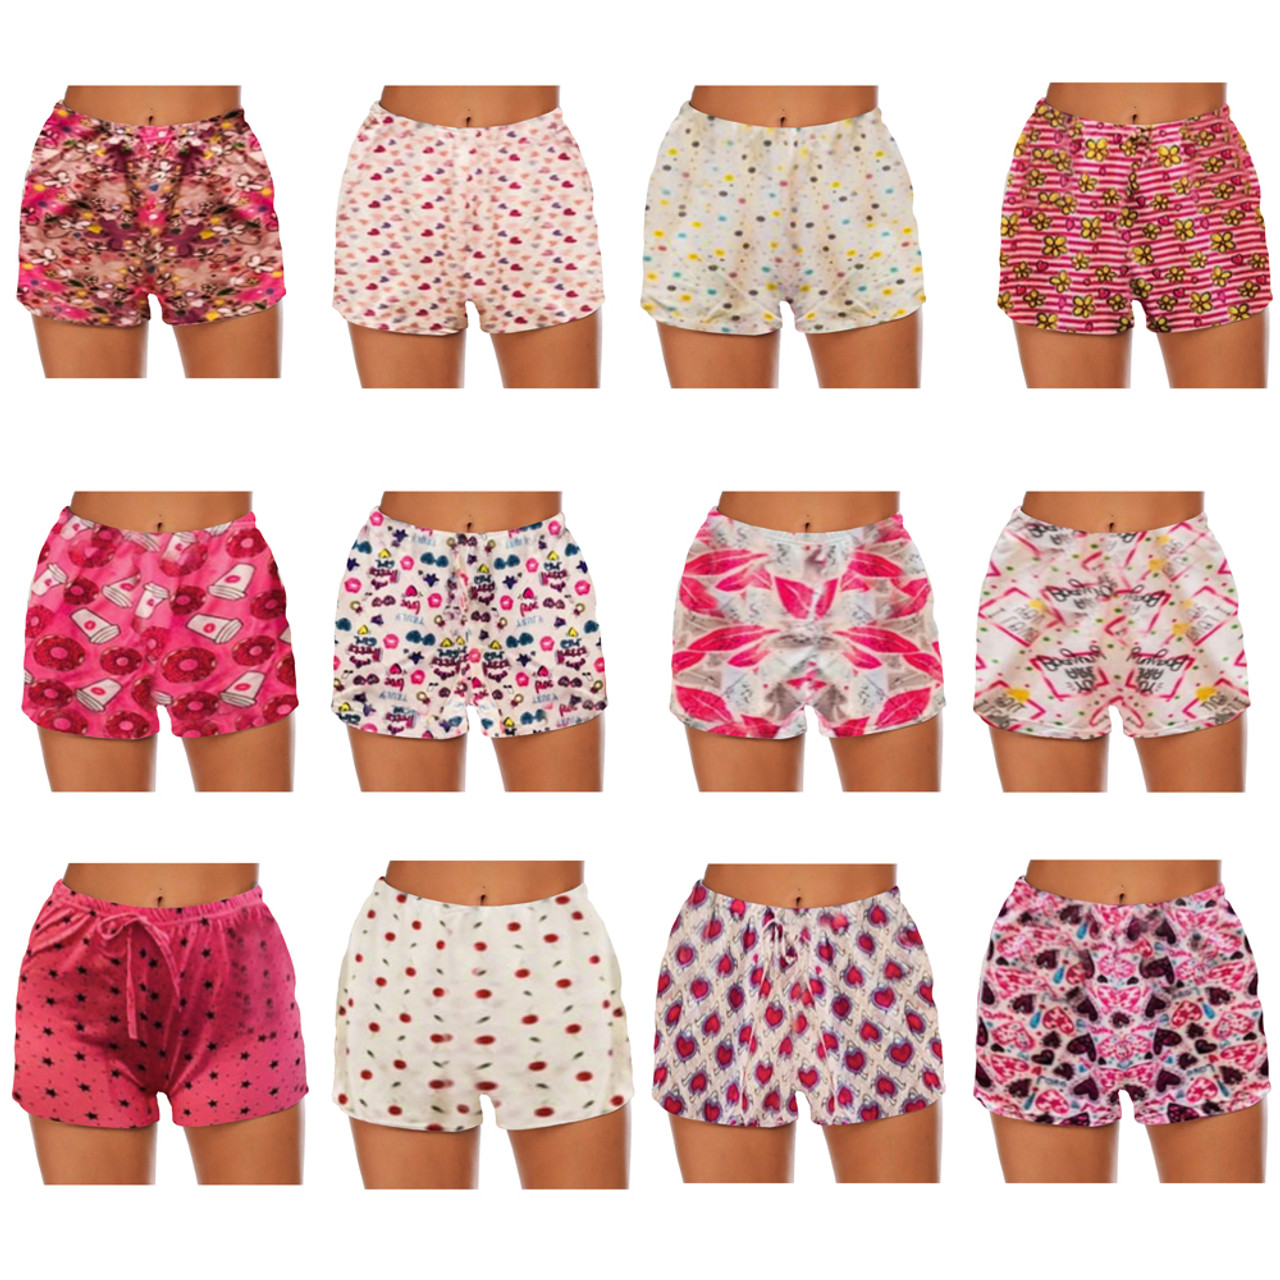 Women's Soft Pajama Shorts with Drawstring (3-Pack) $11.99 80% OFF